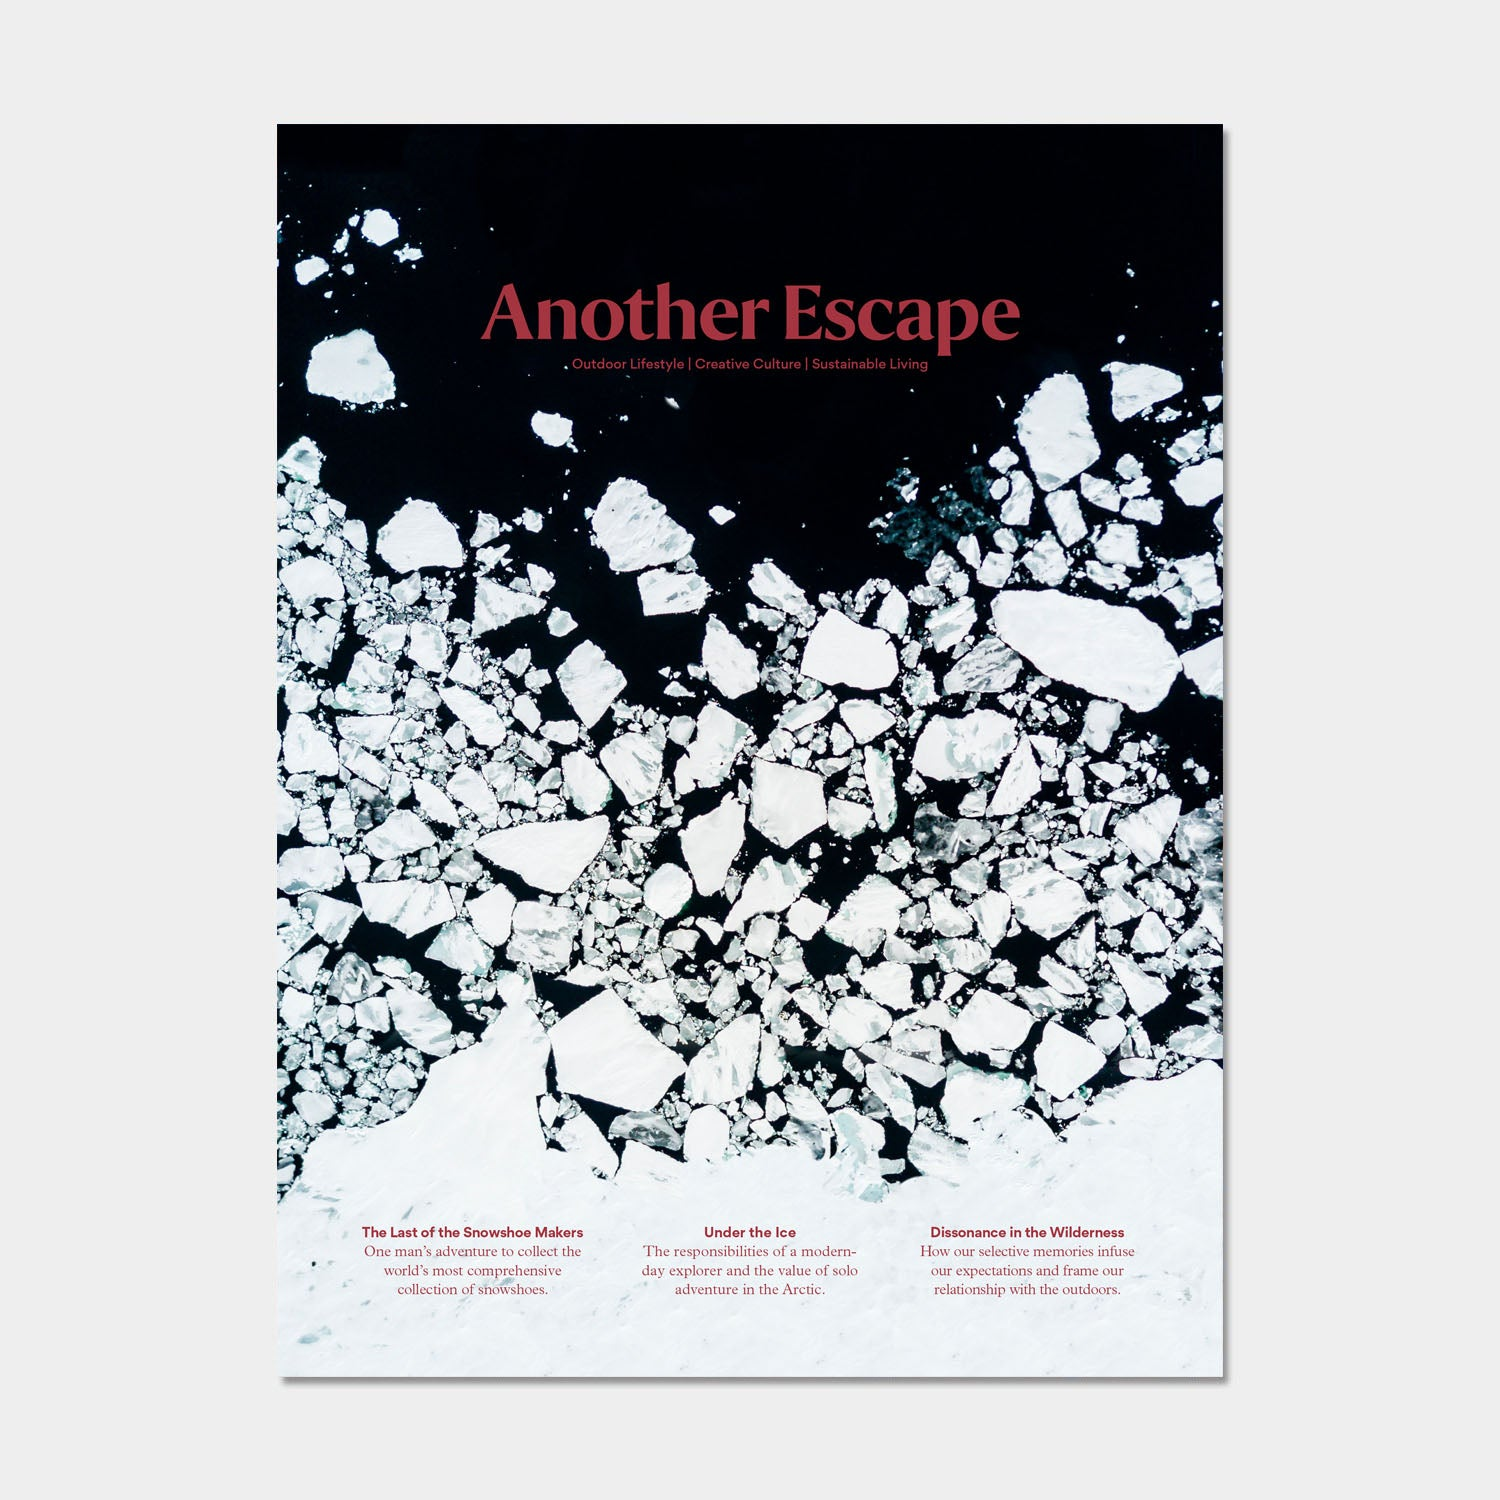 Another Escape Magazine Volume 11 - The Frozen Volume